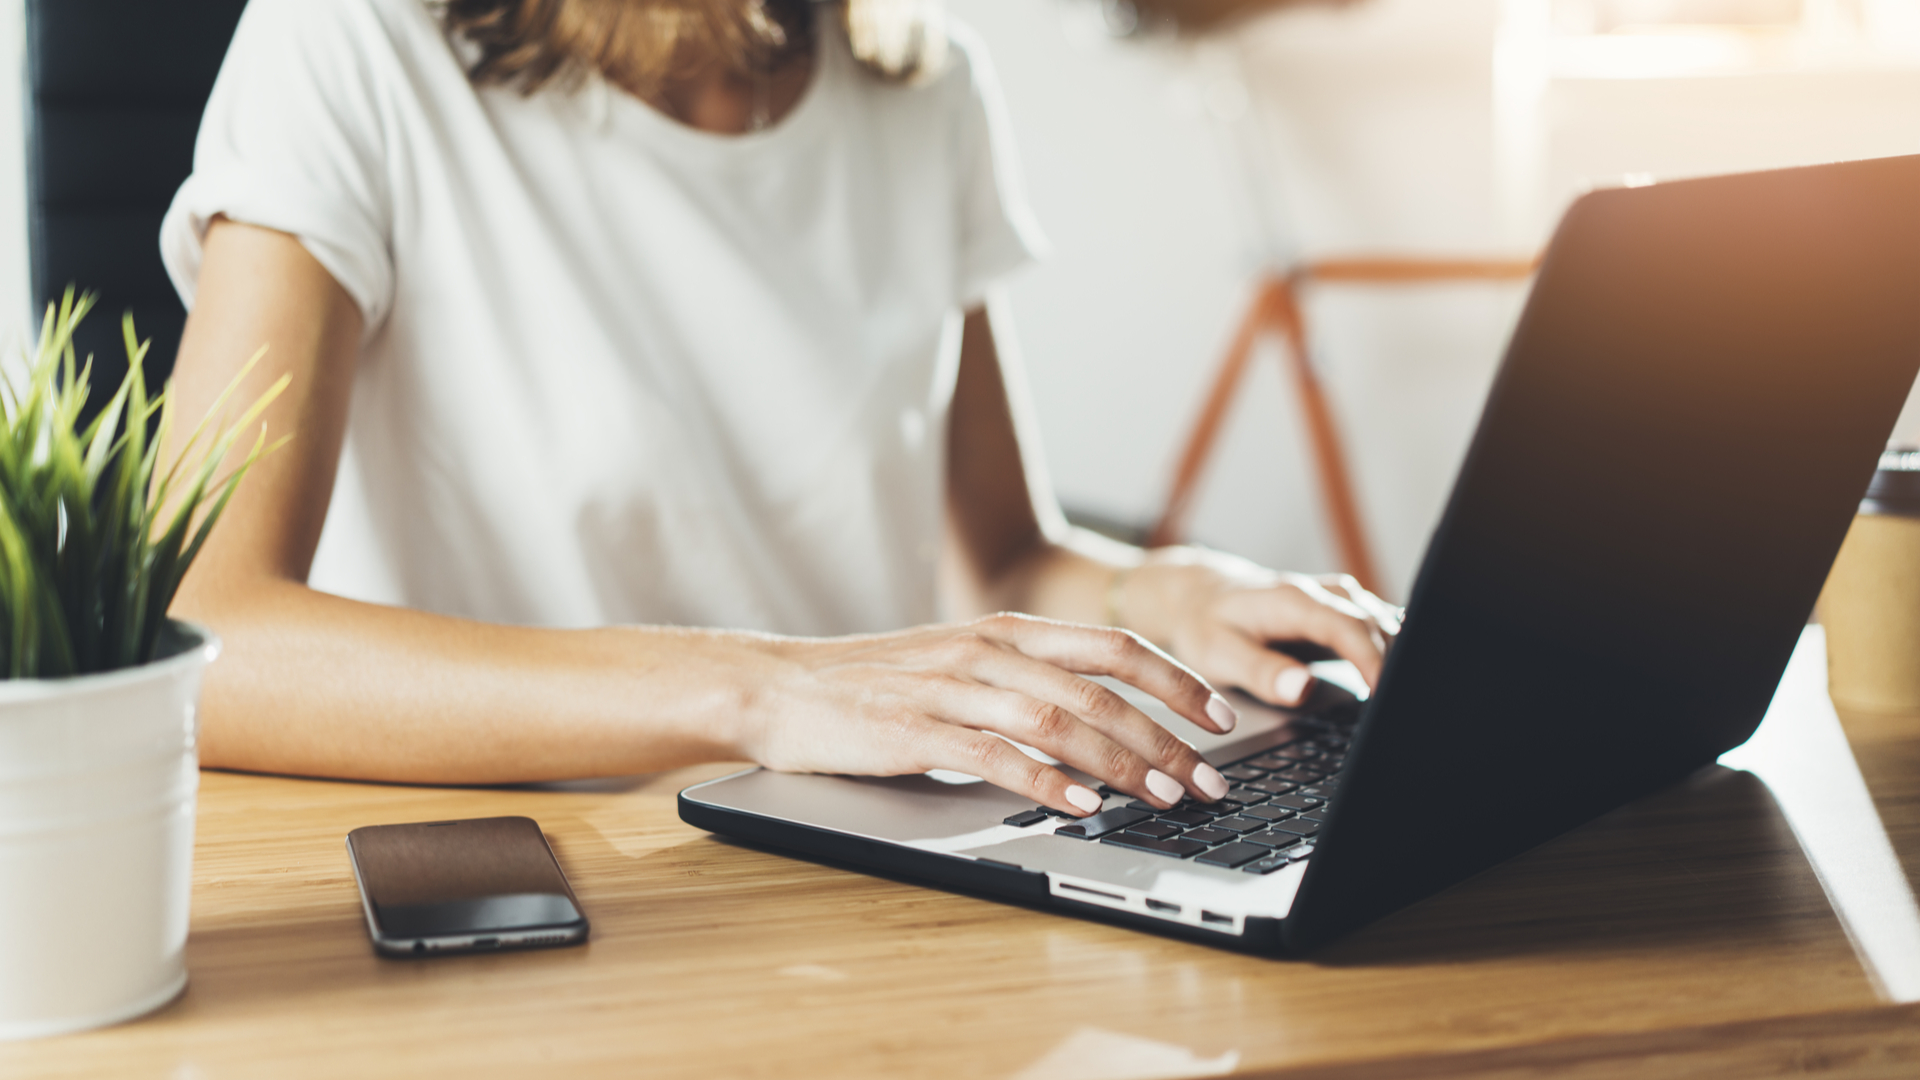 Where to buy laptops for working from home